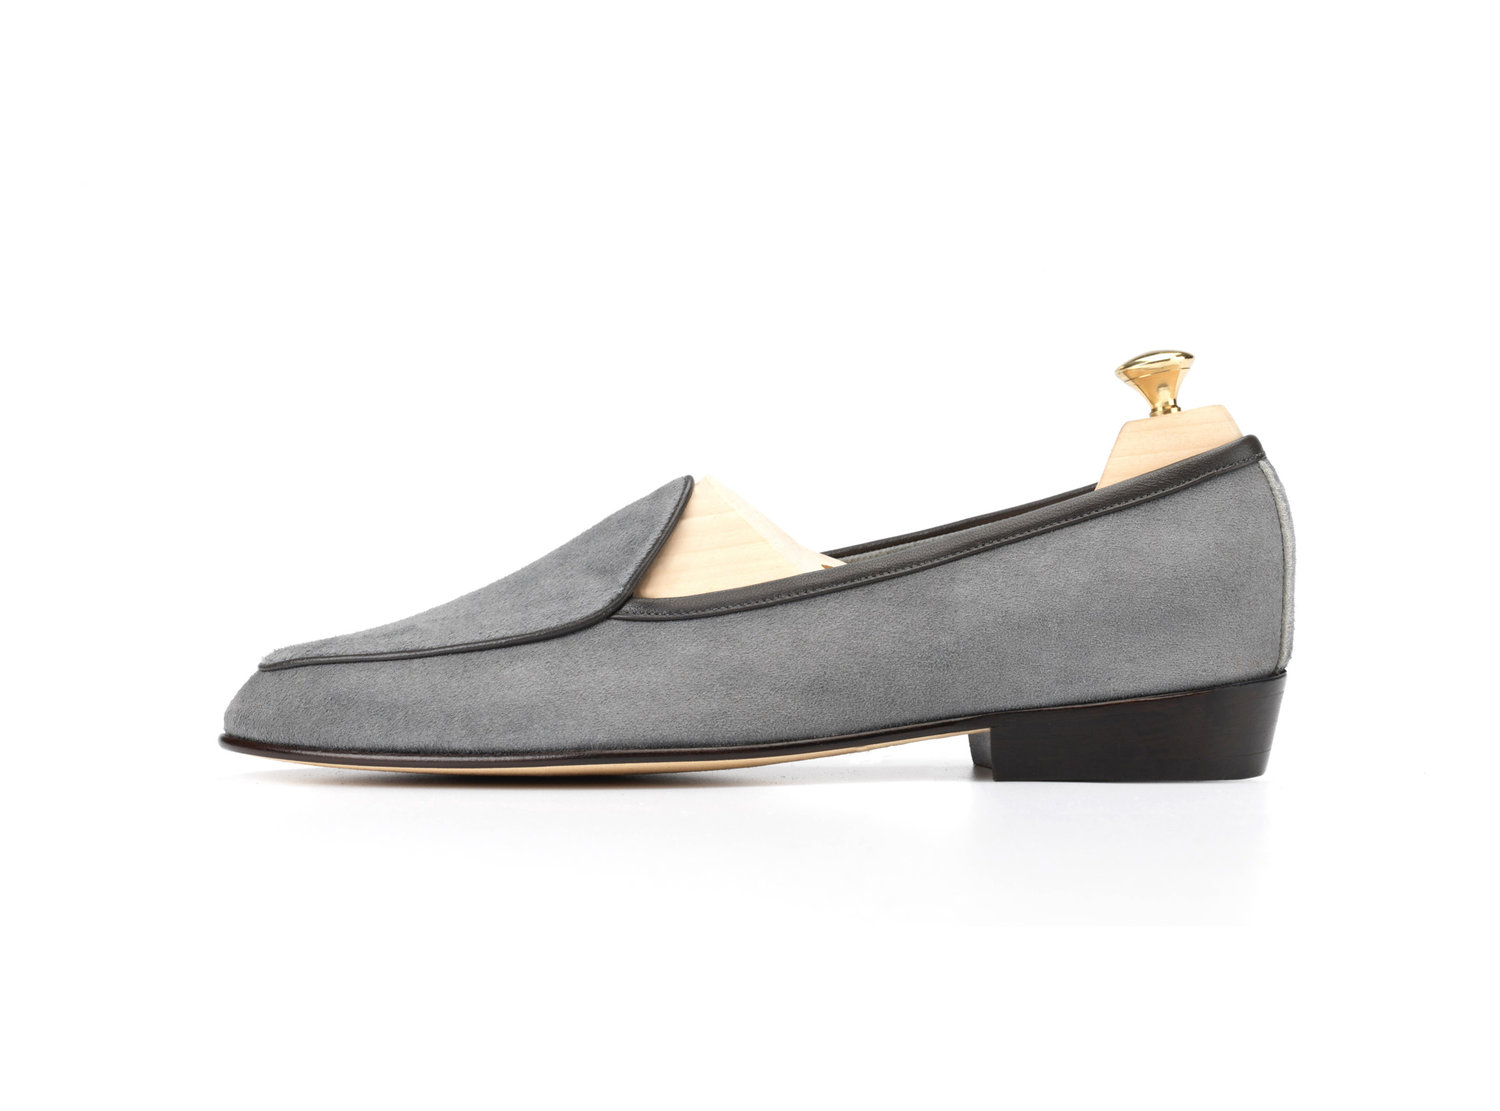 8cb2b18a347 Moon Grey - Classic Loafers - Mens Loafers - Womens Loafers